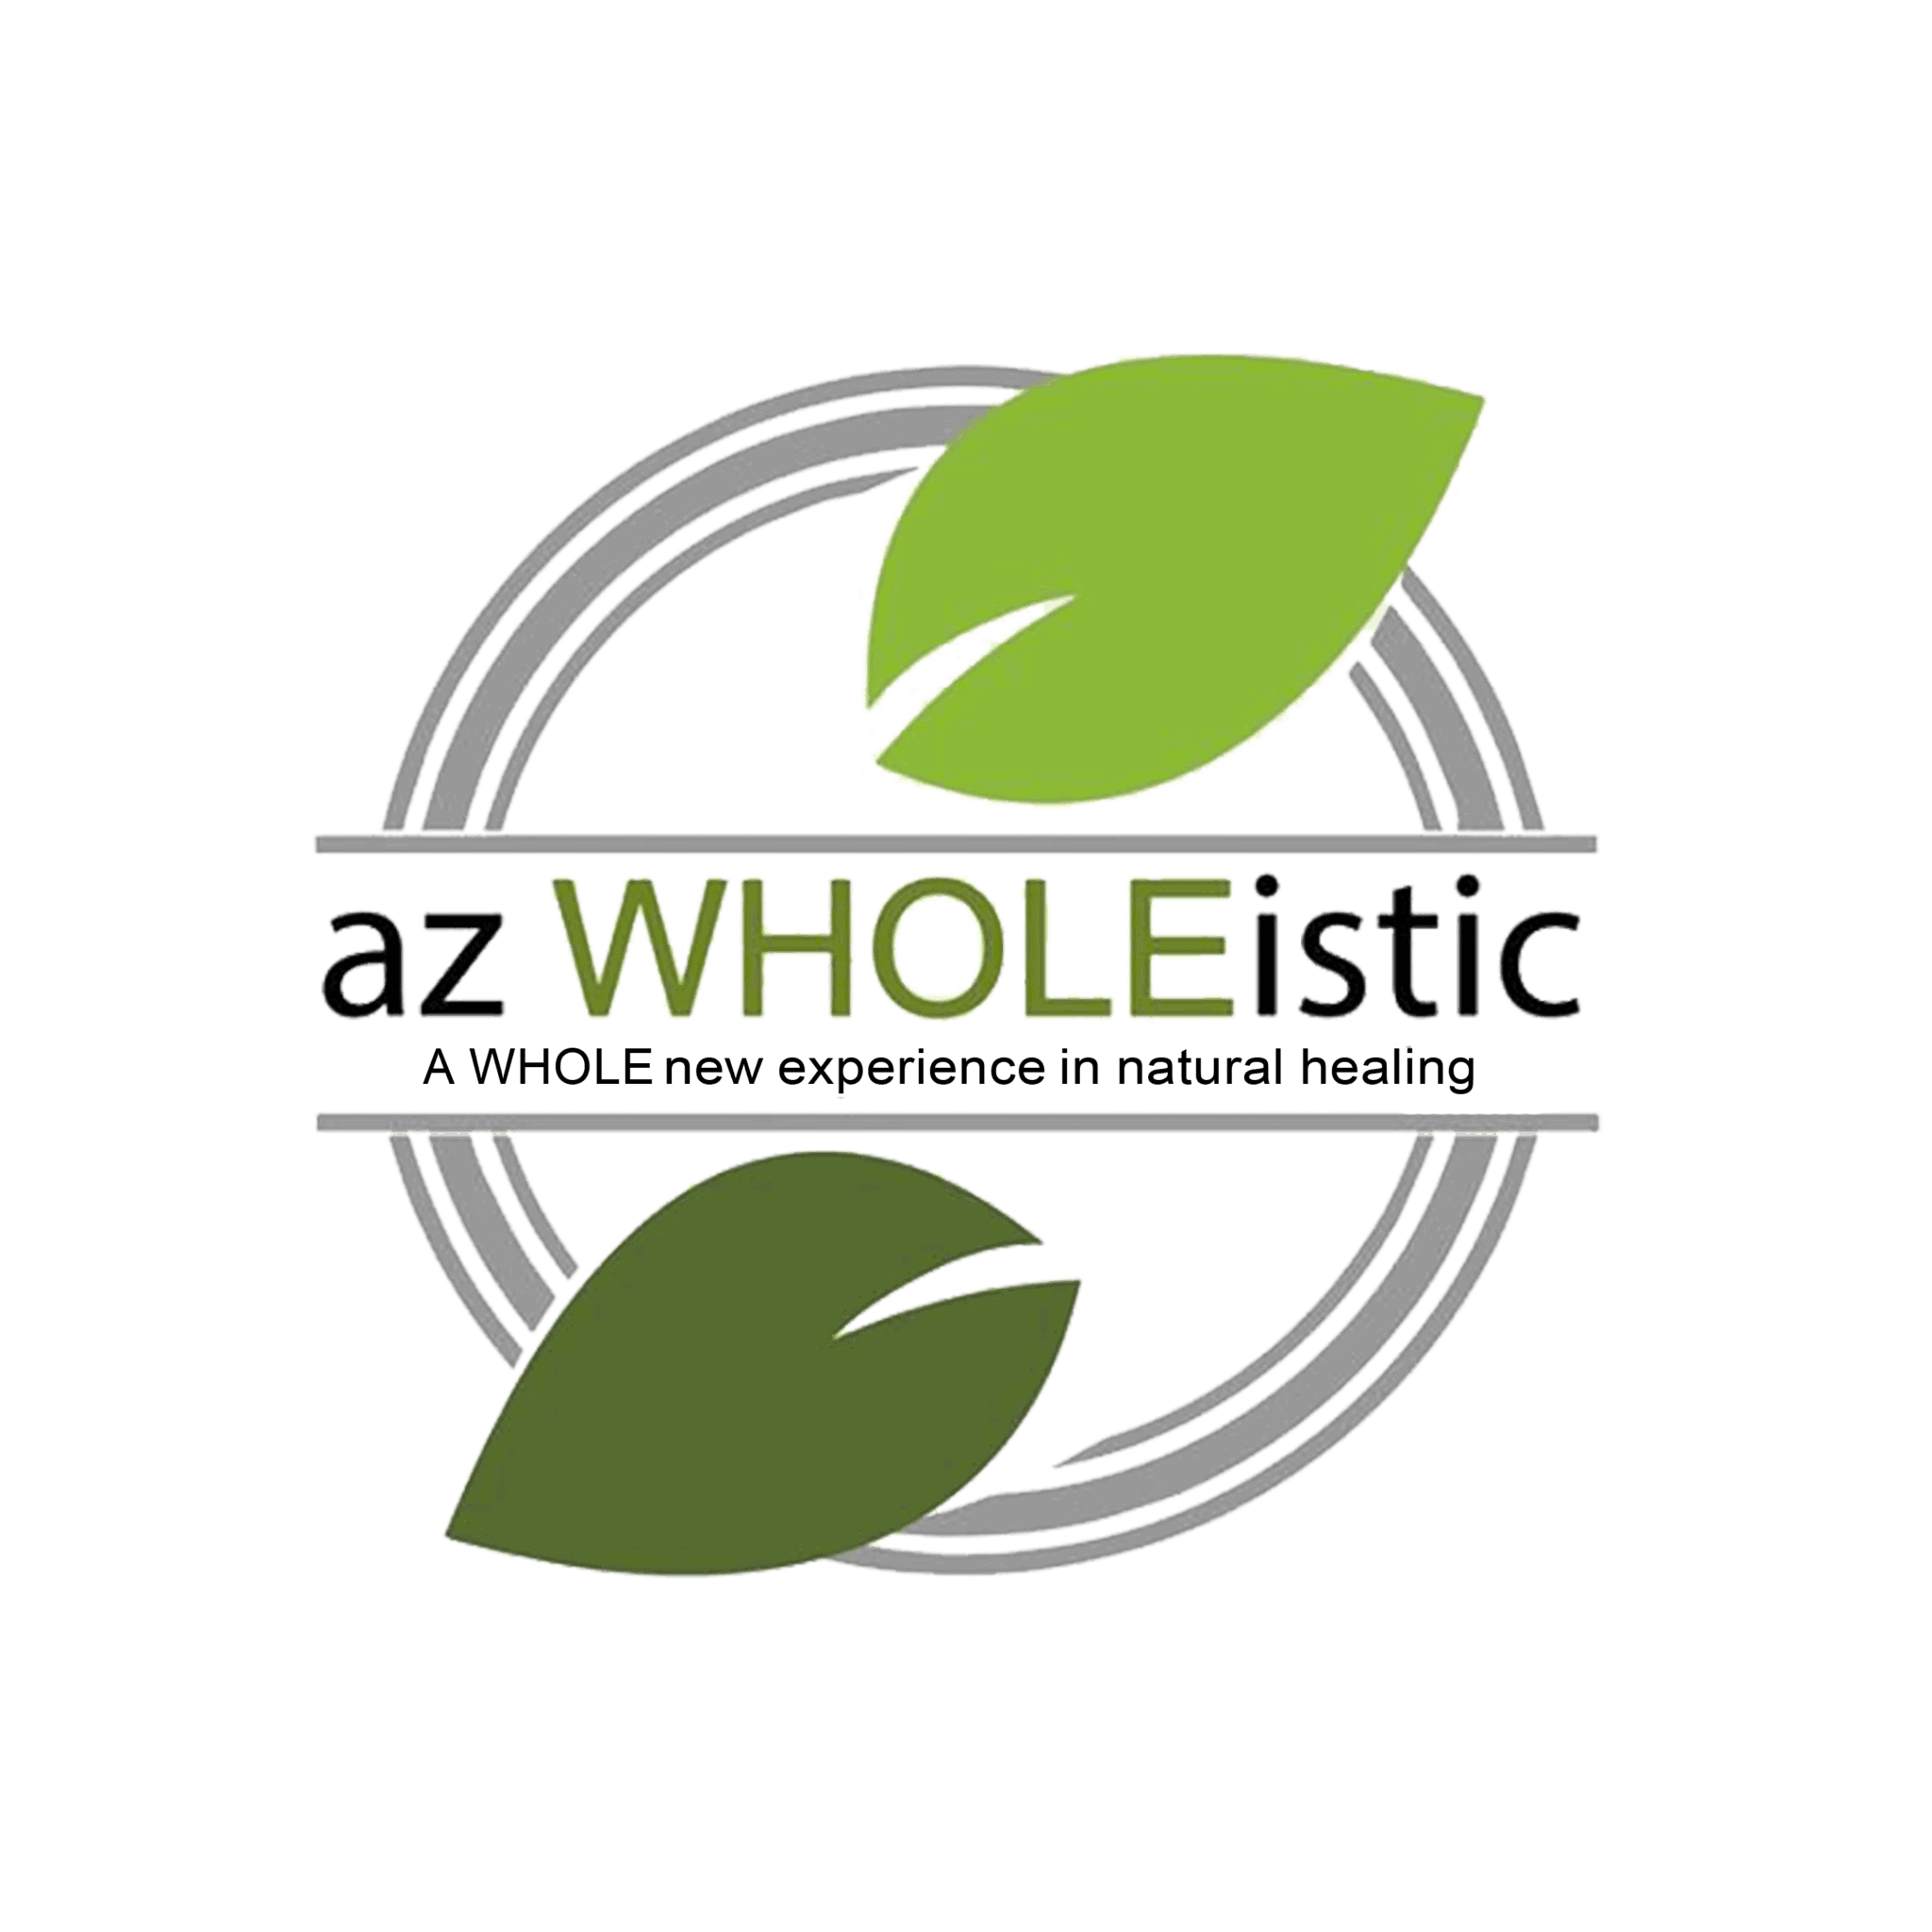 azWHOLEistic #1 CBD OIL IN PHOENIX | Phoenix AZ CBD Dispensary